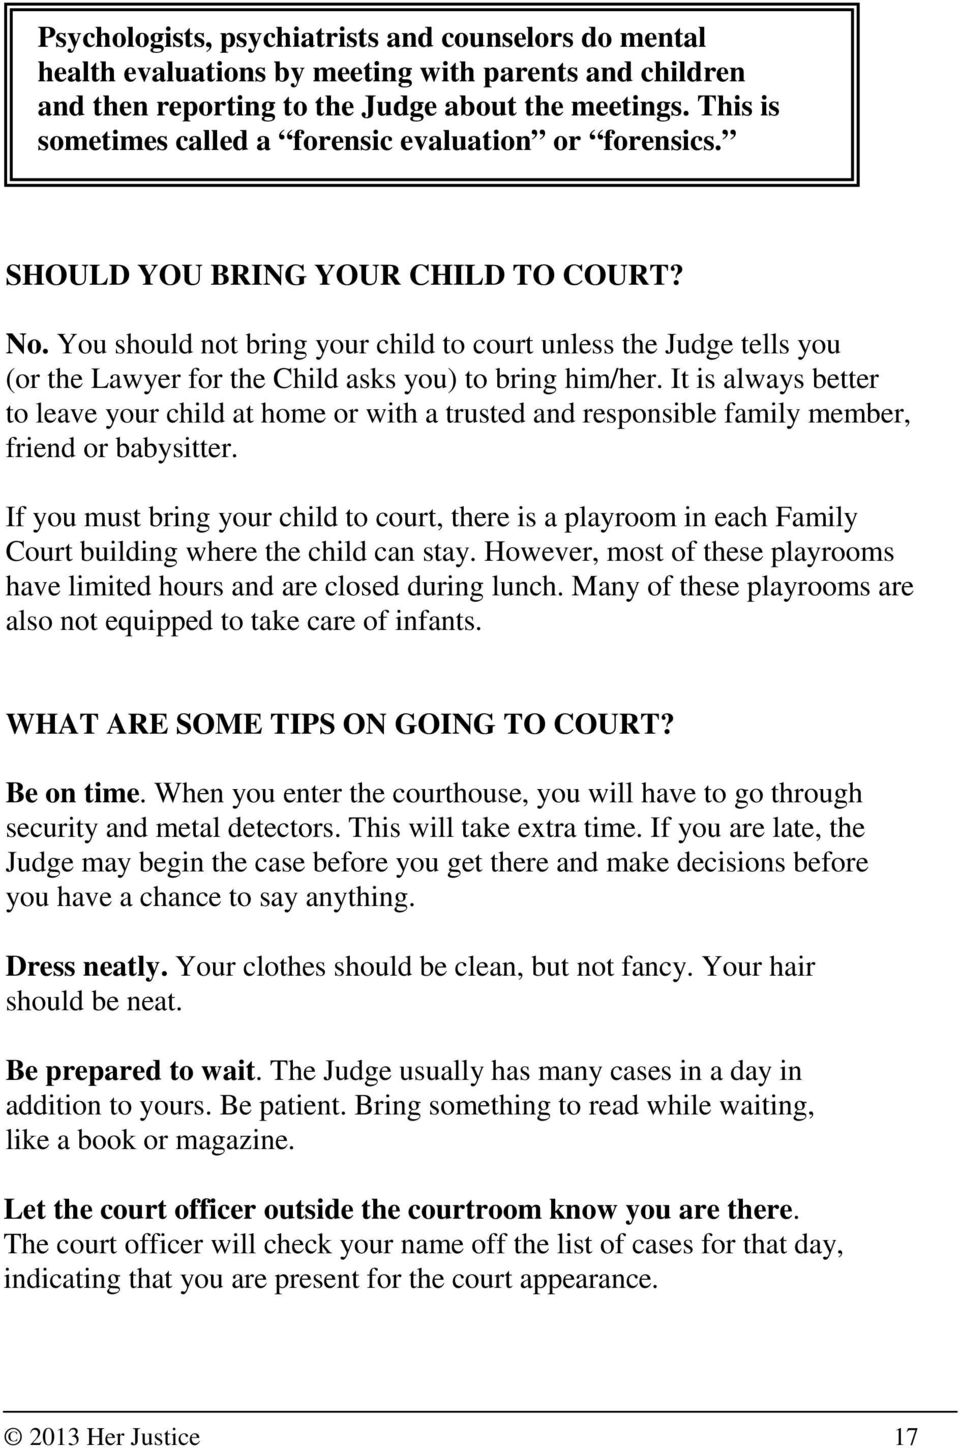 You should not bring your child to court unless the Judge tells you (or the Lawyer for the Child asks you) to bring him/her.